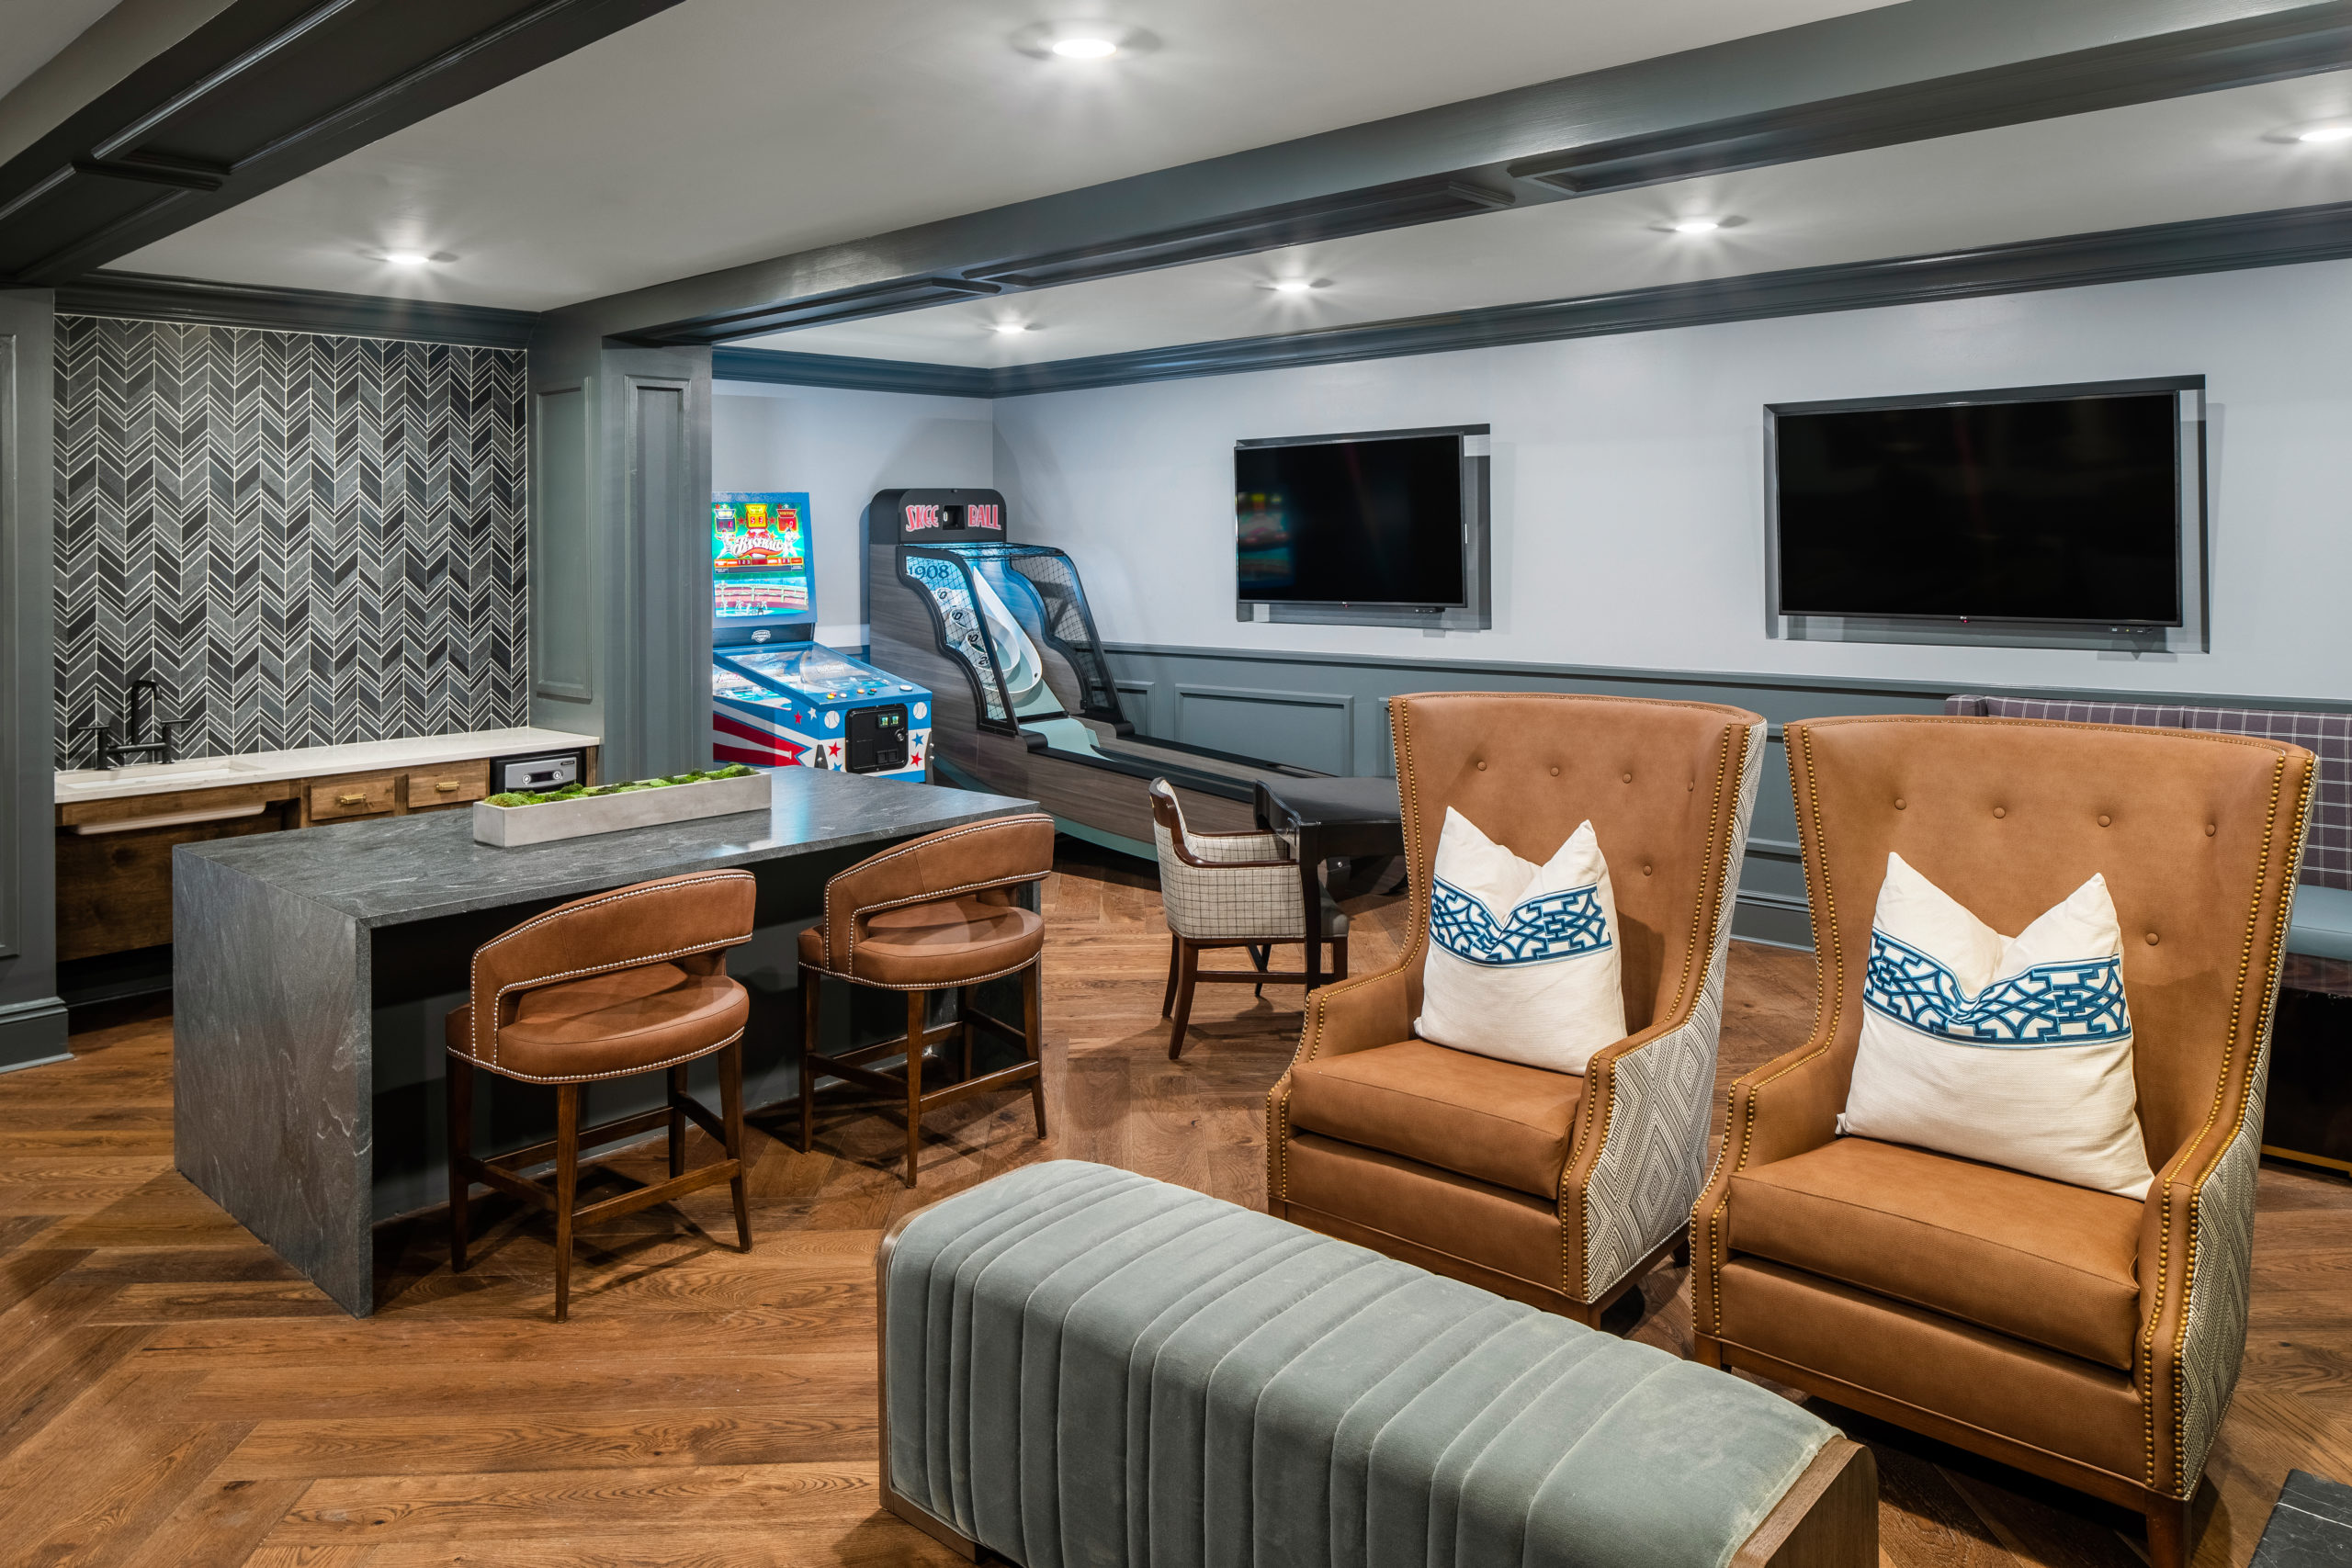 Longleaf lounge bard and stools at left, arcade games to right of bar, two brown leather chairs with white and blue pillows at right with light green ottoman